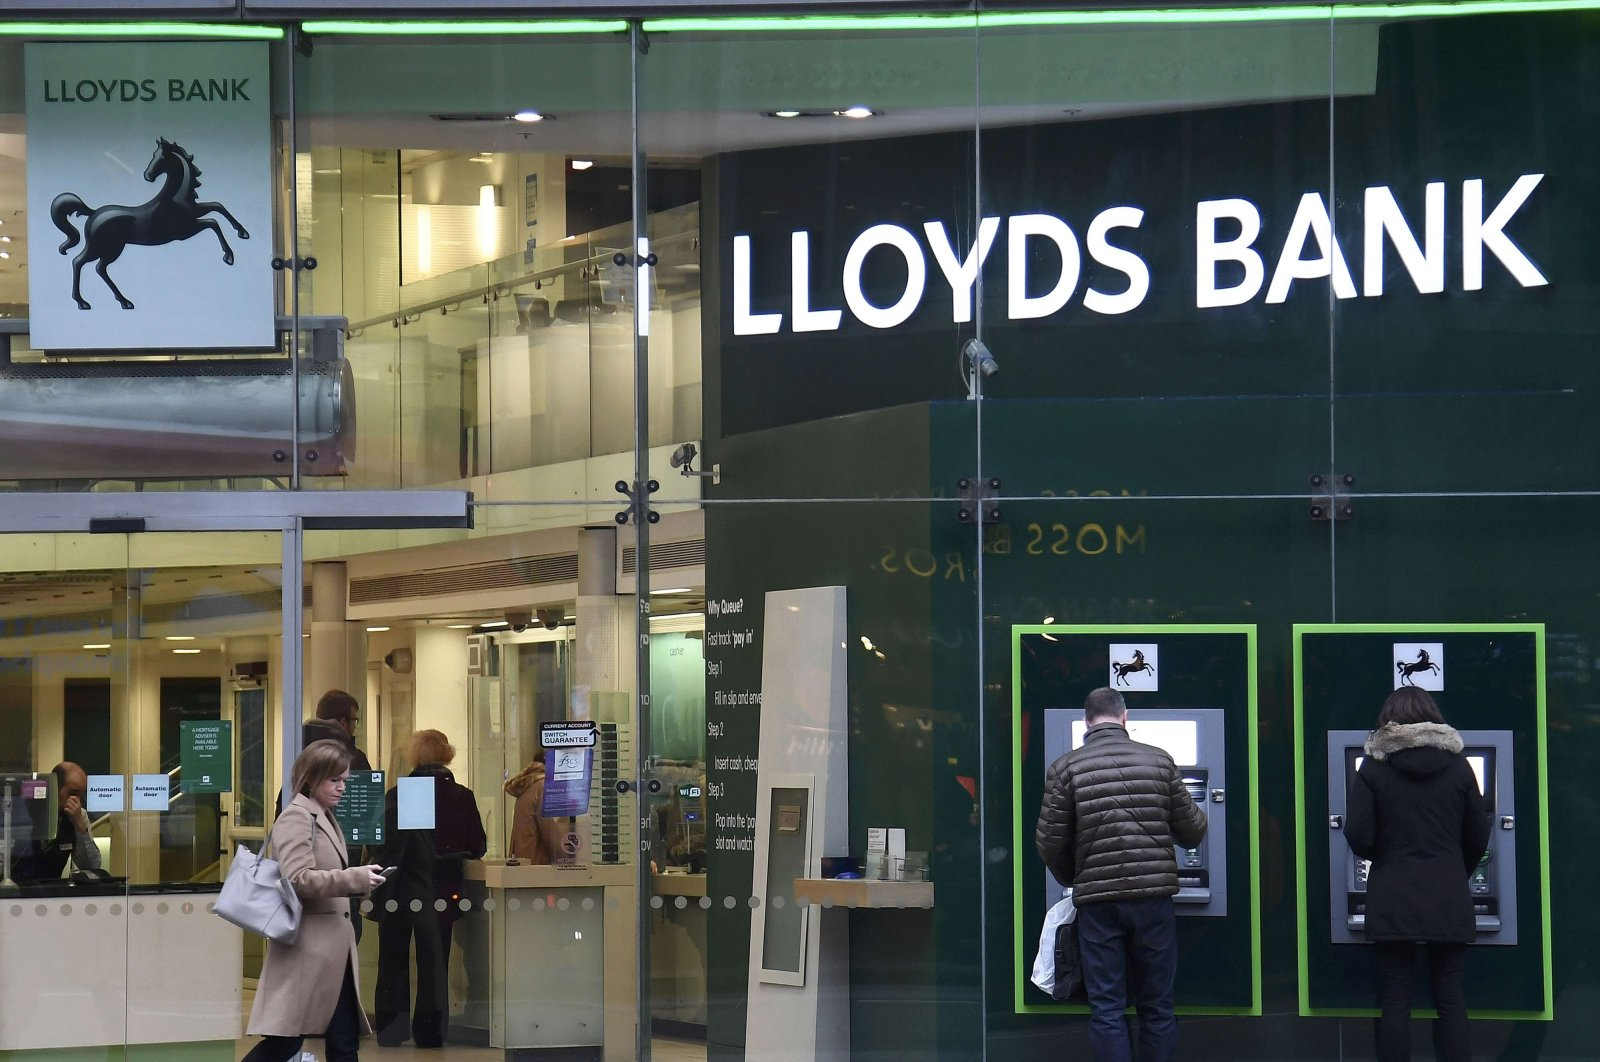 Customers use ATMs at a branch of Lloyds Bank in London, Feb. 21, 2017. (Reuters Photo)